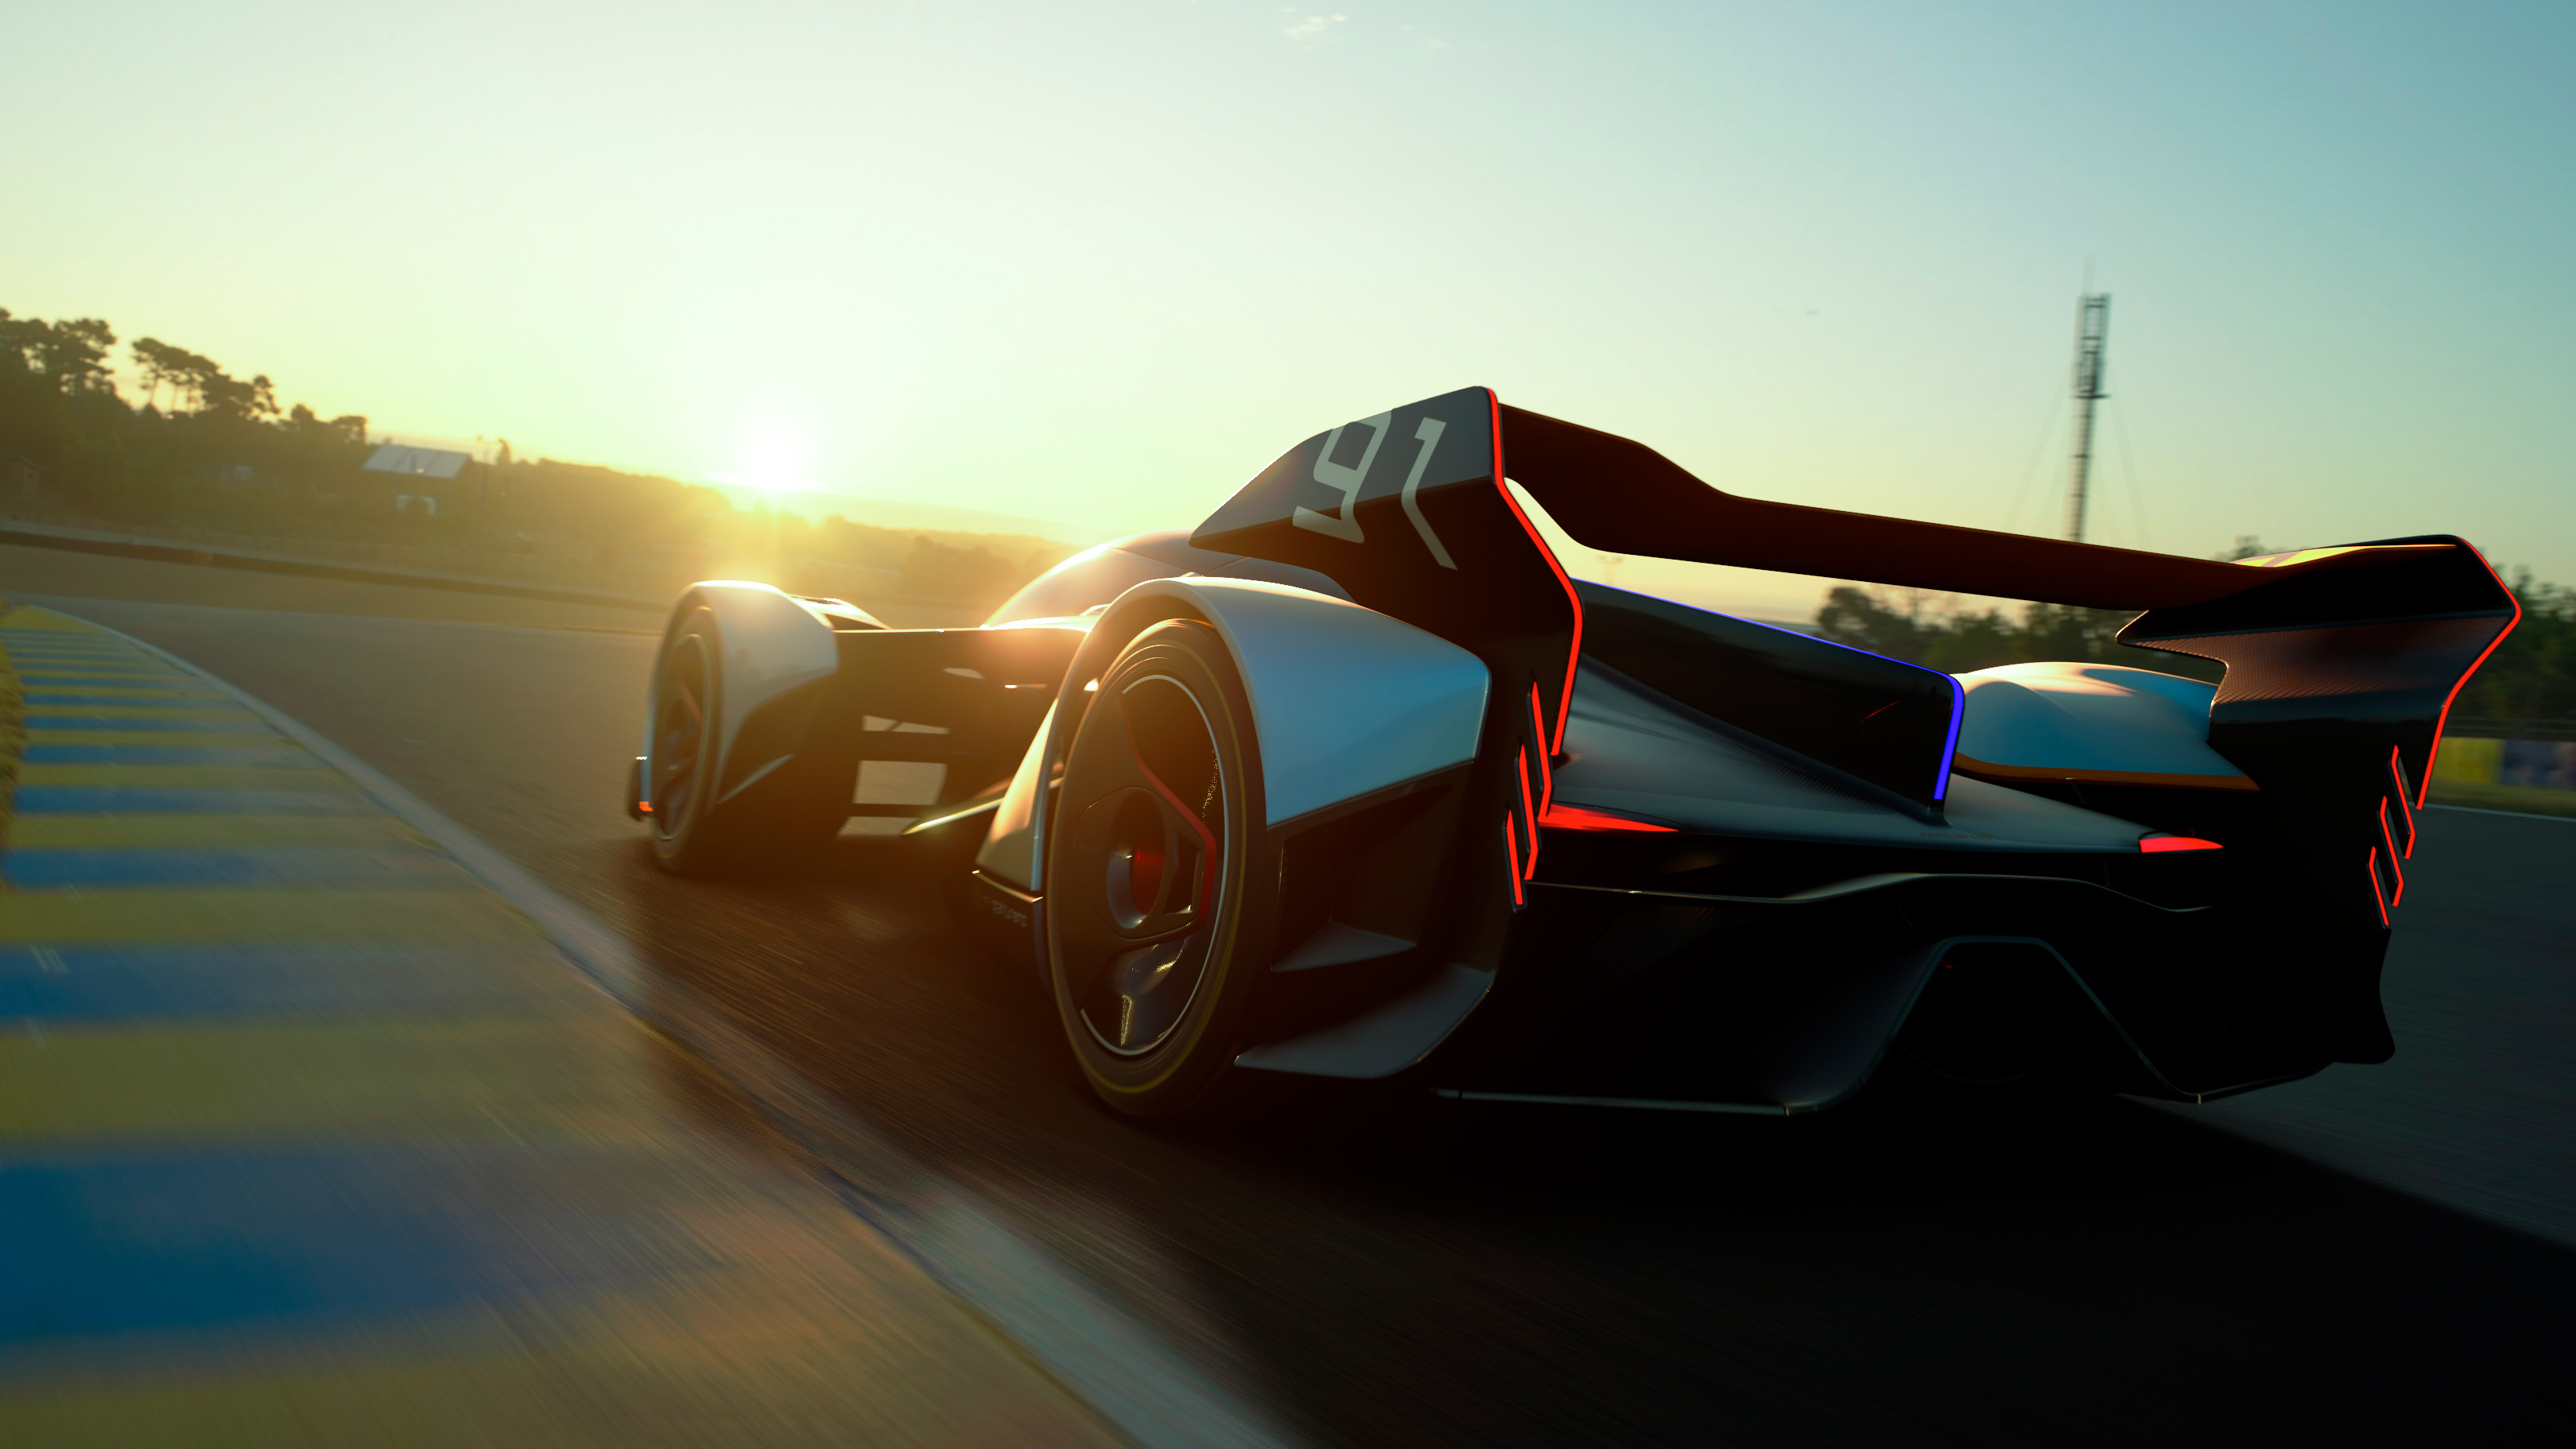 mclaren ultimate vision gt ps4 gran turismo sport wallpaper hd car wallpapers id 8691. Black Bedroom Furniture Sets. Home Design Ideas